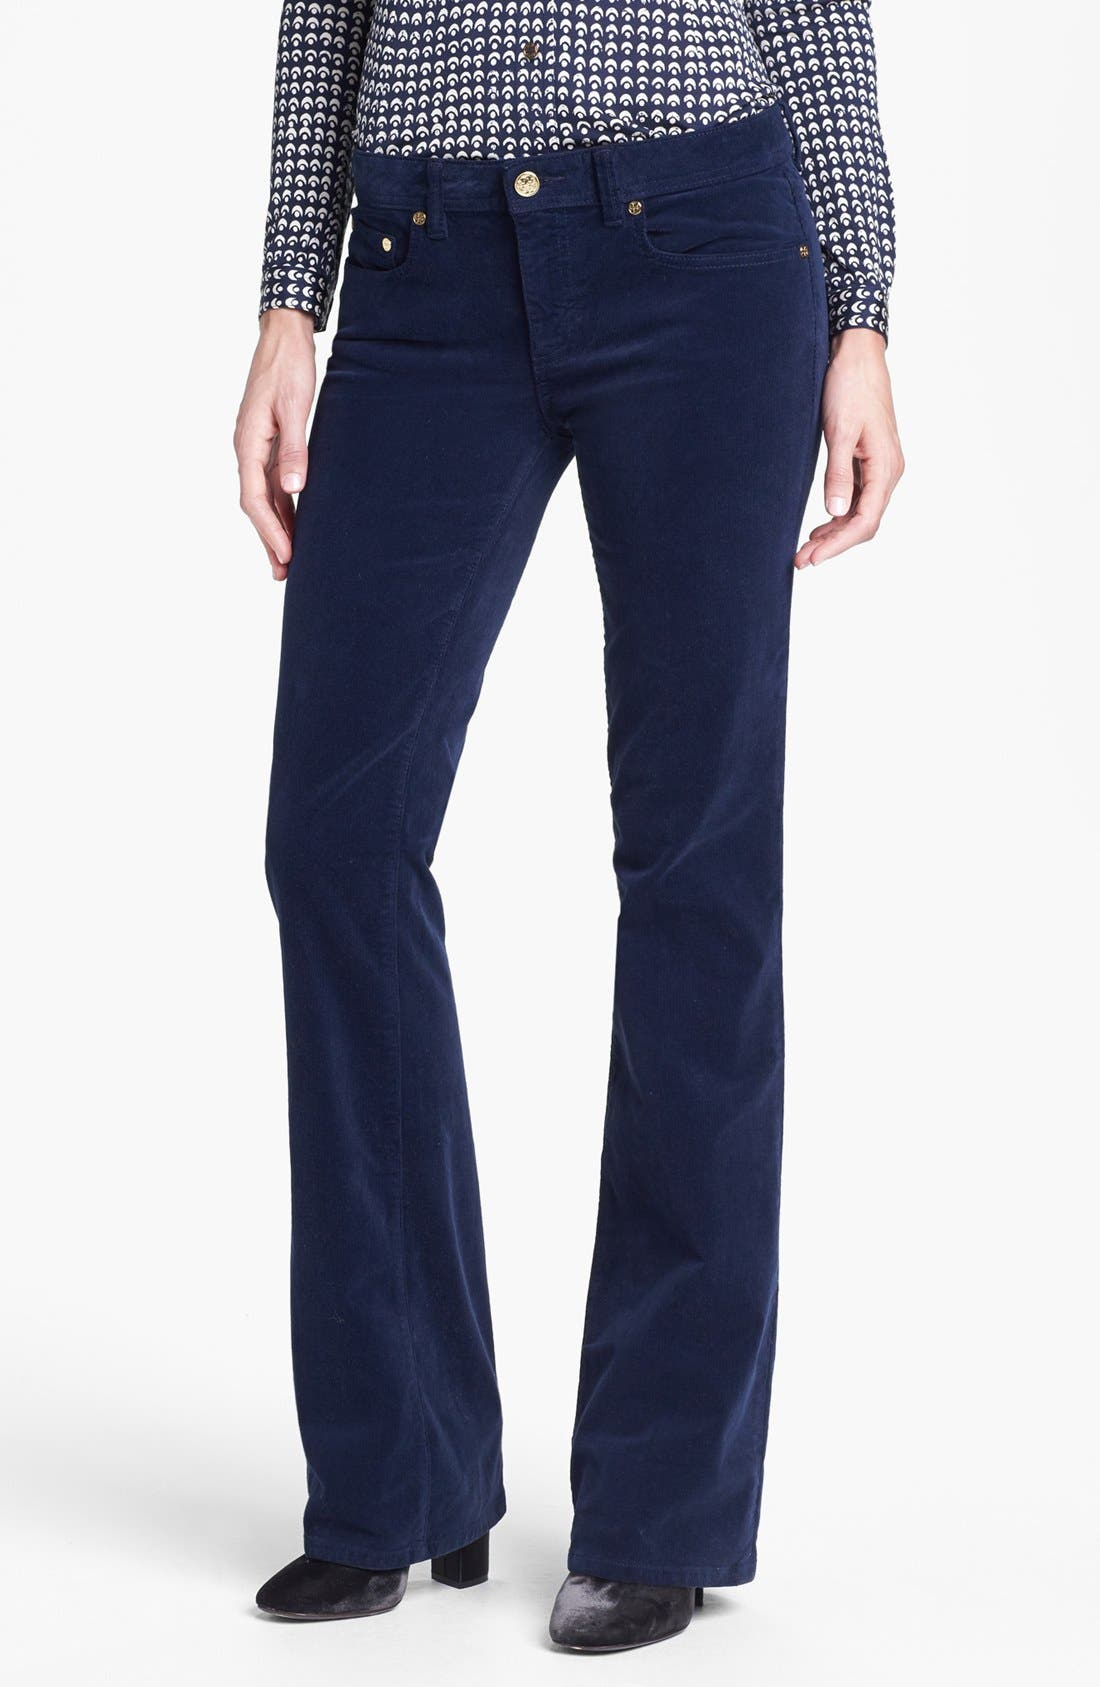 Alternate Image 1 Selected - Tory Burch 'Classic Tory' Corduroy Pants